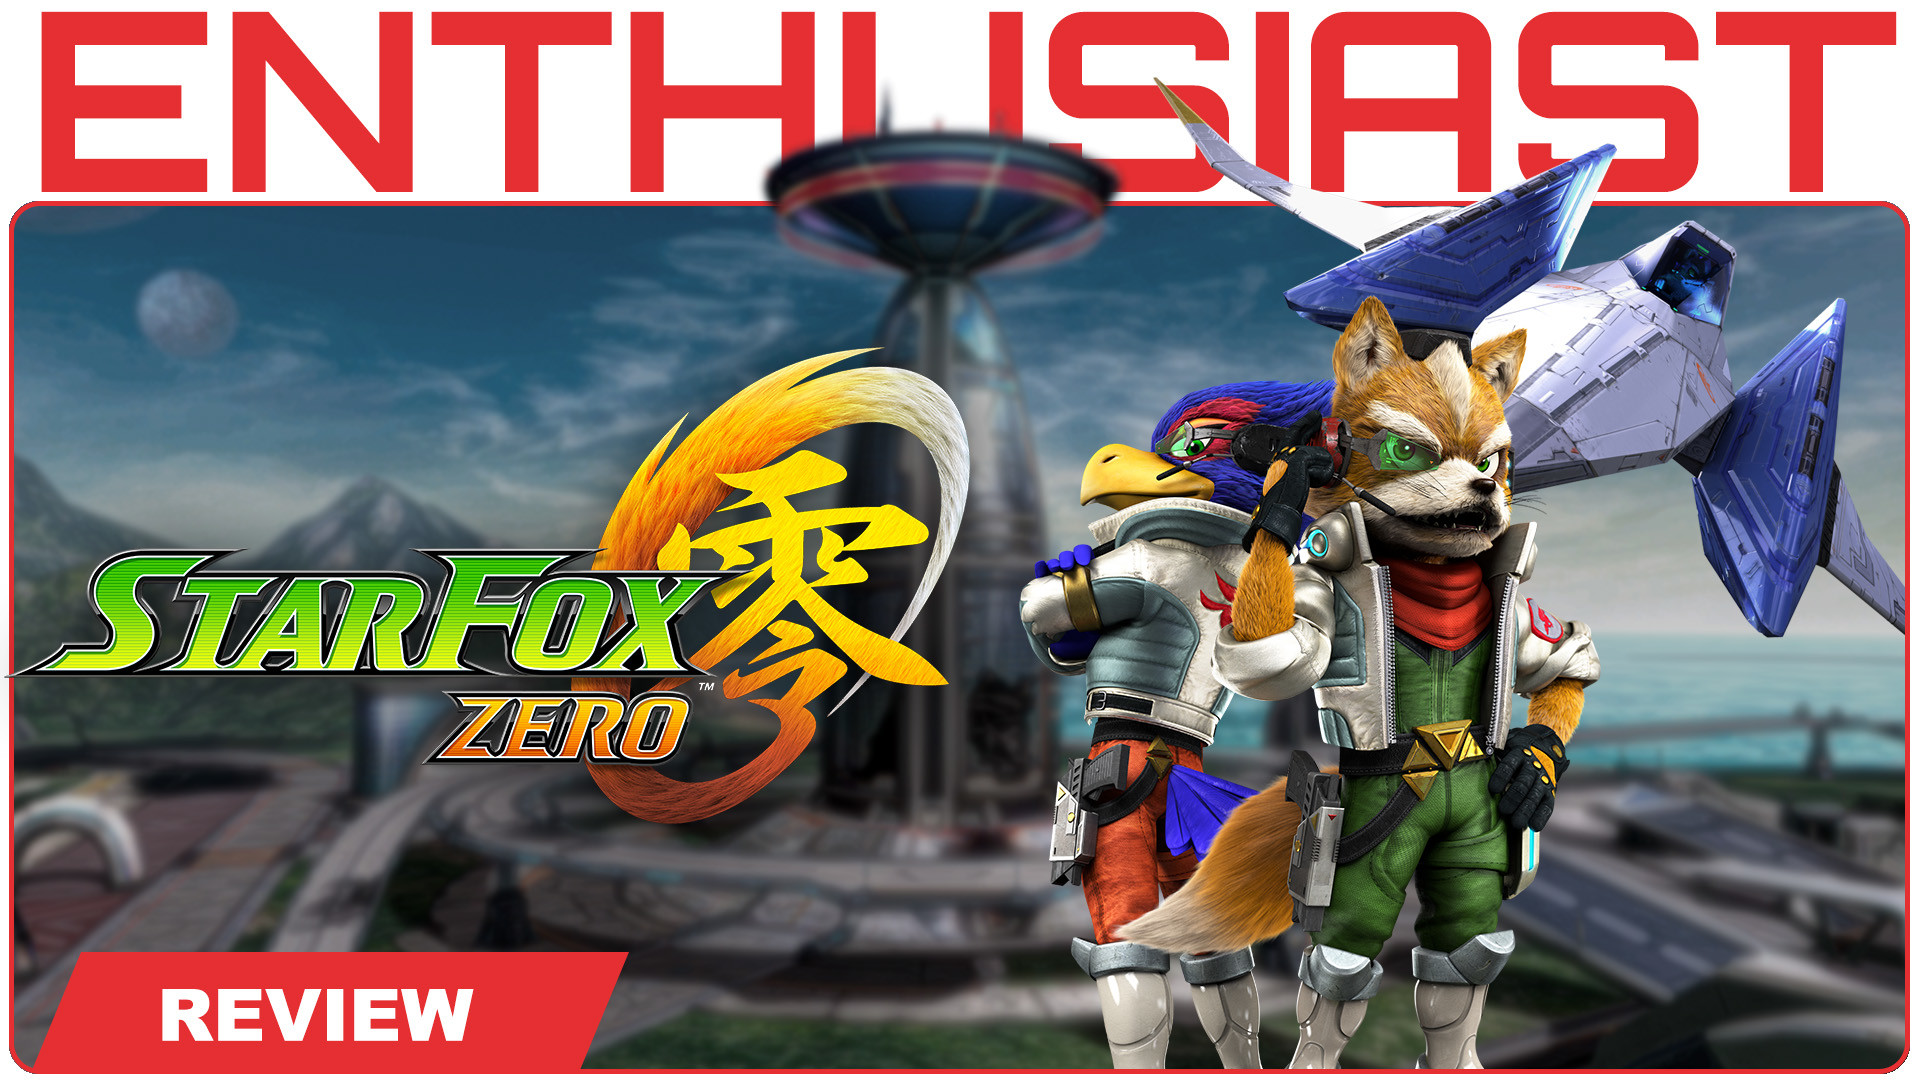 1920x1080 What is a Star Fox game? Looking back on the franchise, there's only 5  titles prior to Star Fox Zero and they all play quite differently: from the  classic ...